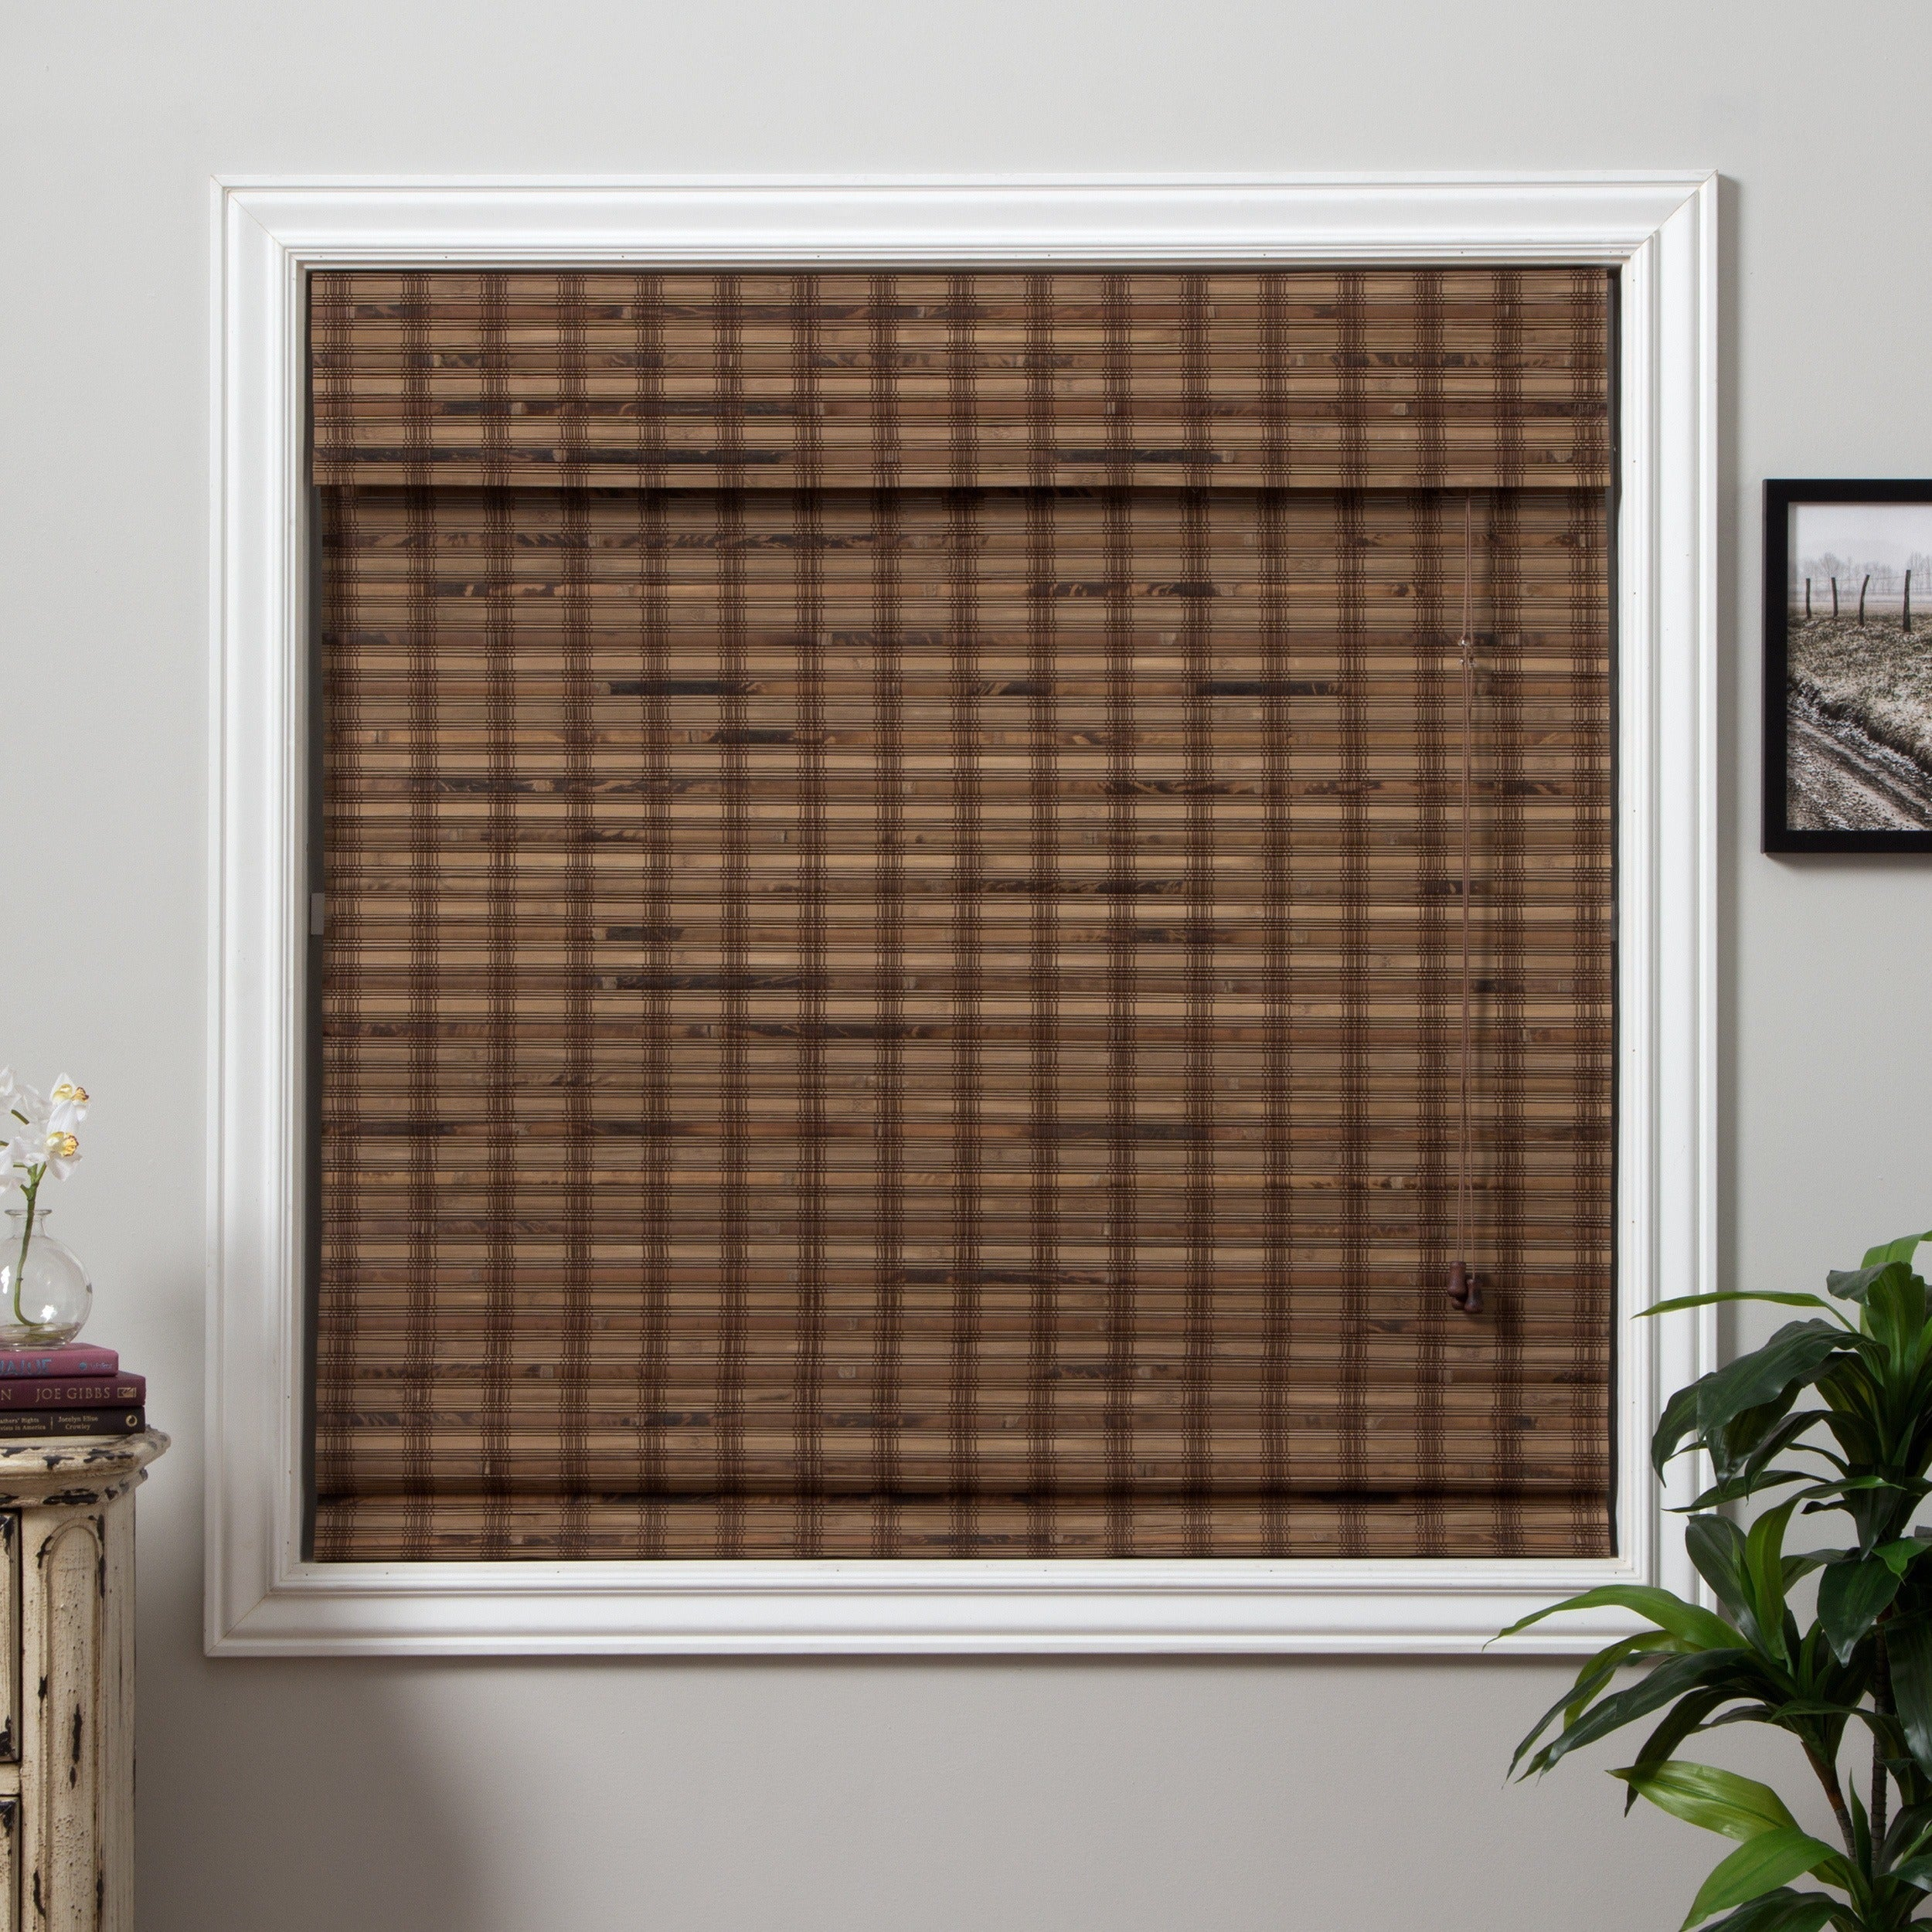 Shop Arlo Blinds Guinea Deep Bamboo Roman Shade with 74 Inch Height ...